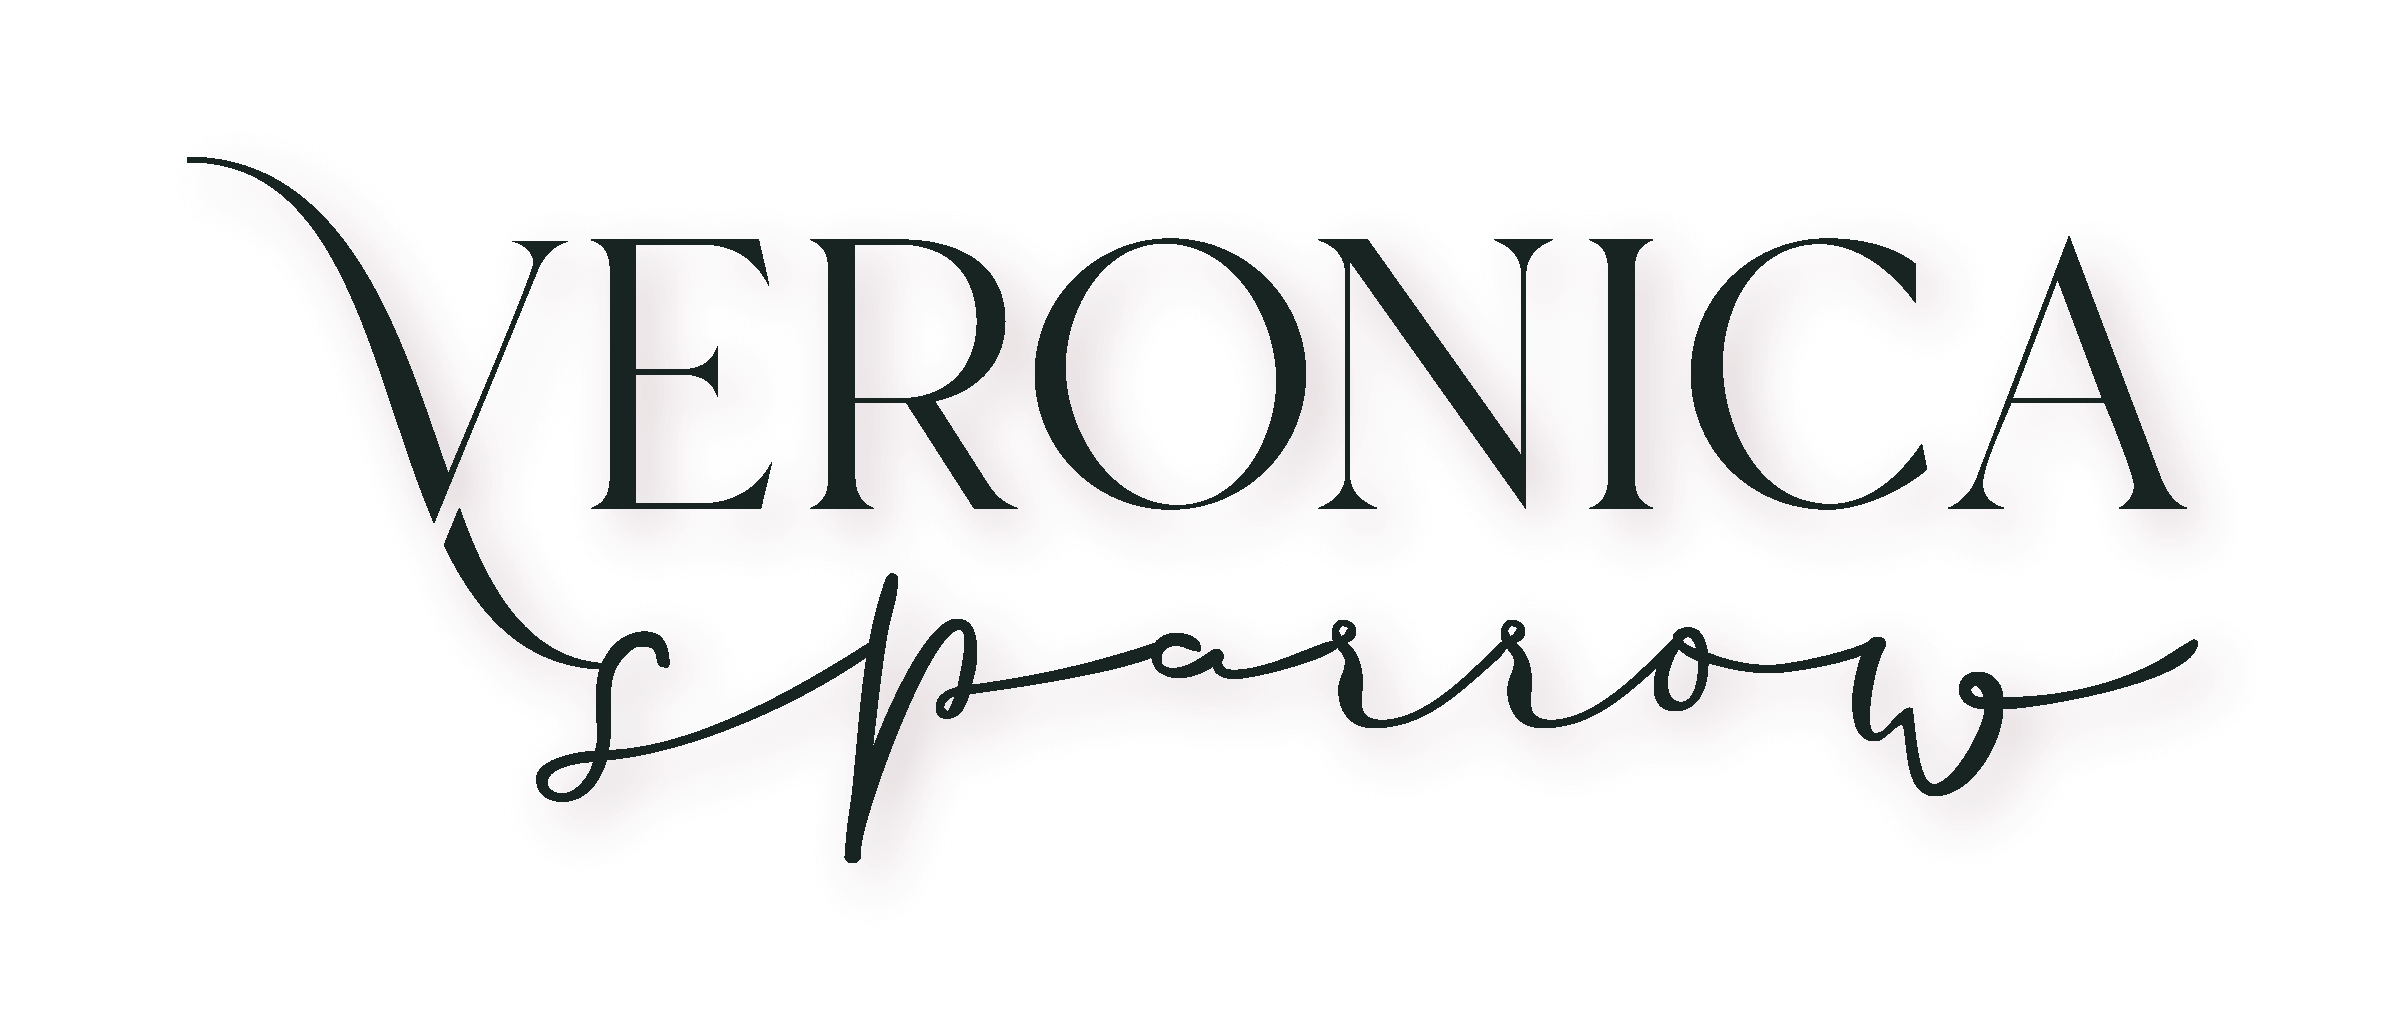 Veronica Sparrow - Wordmark Logo - Deep Green@5x